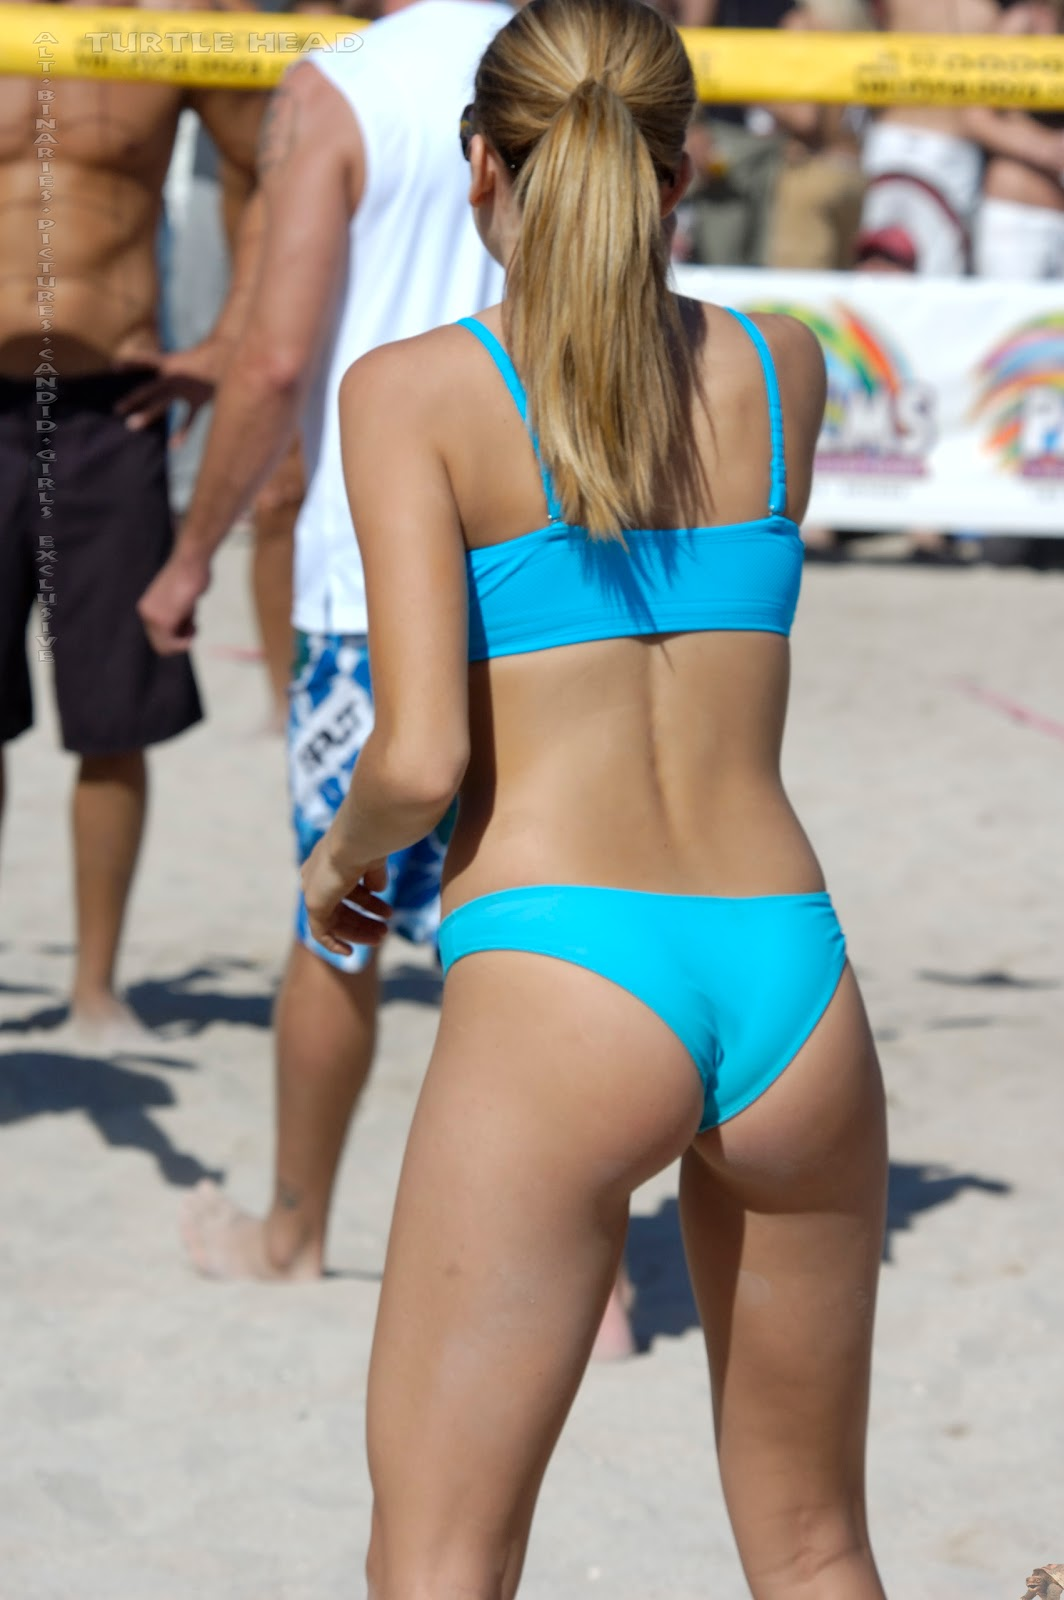 Volleyball Girls Pictures Beach Volleyball Girl In A Nice -3800